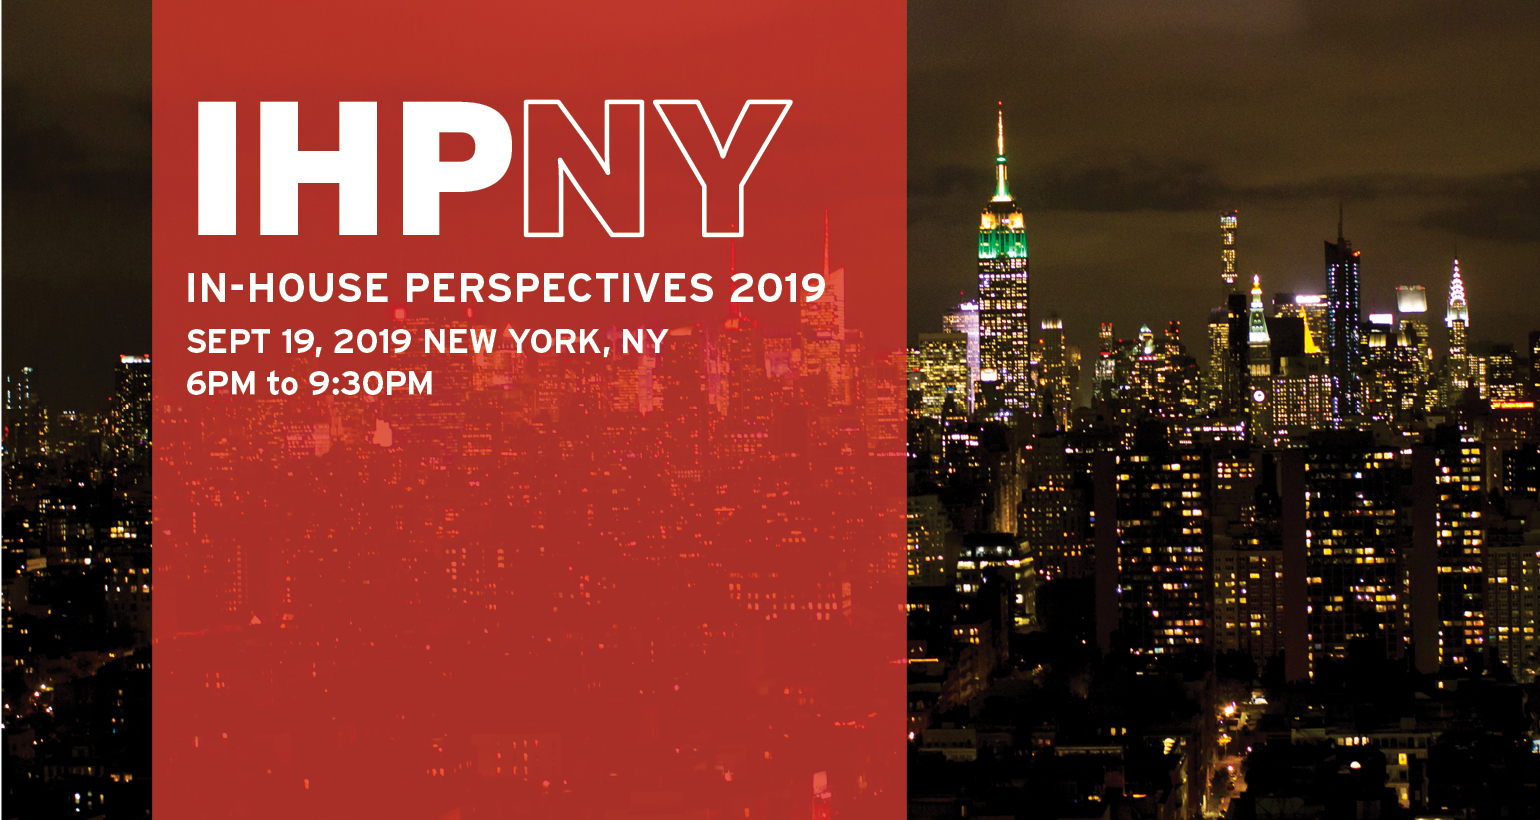 In-House Perspectives 2019: Save The Date